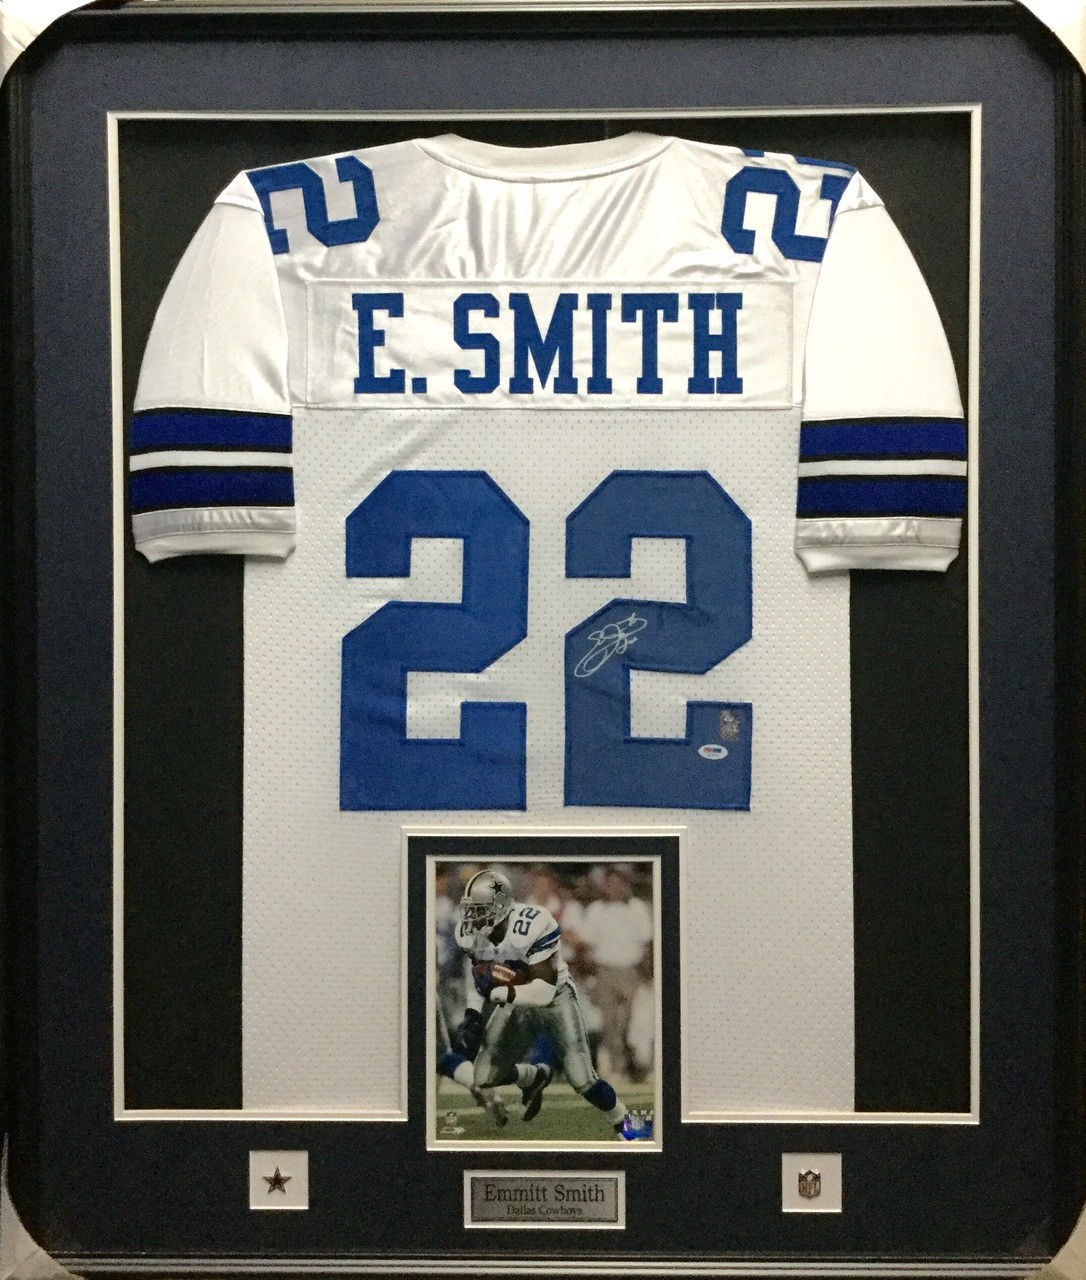 buy online 30221 71d0a dallas cowboys framed jerseys